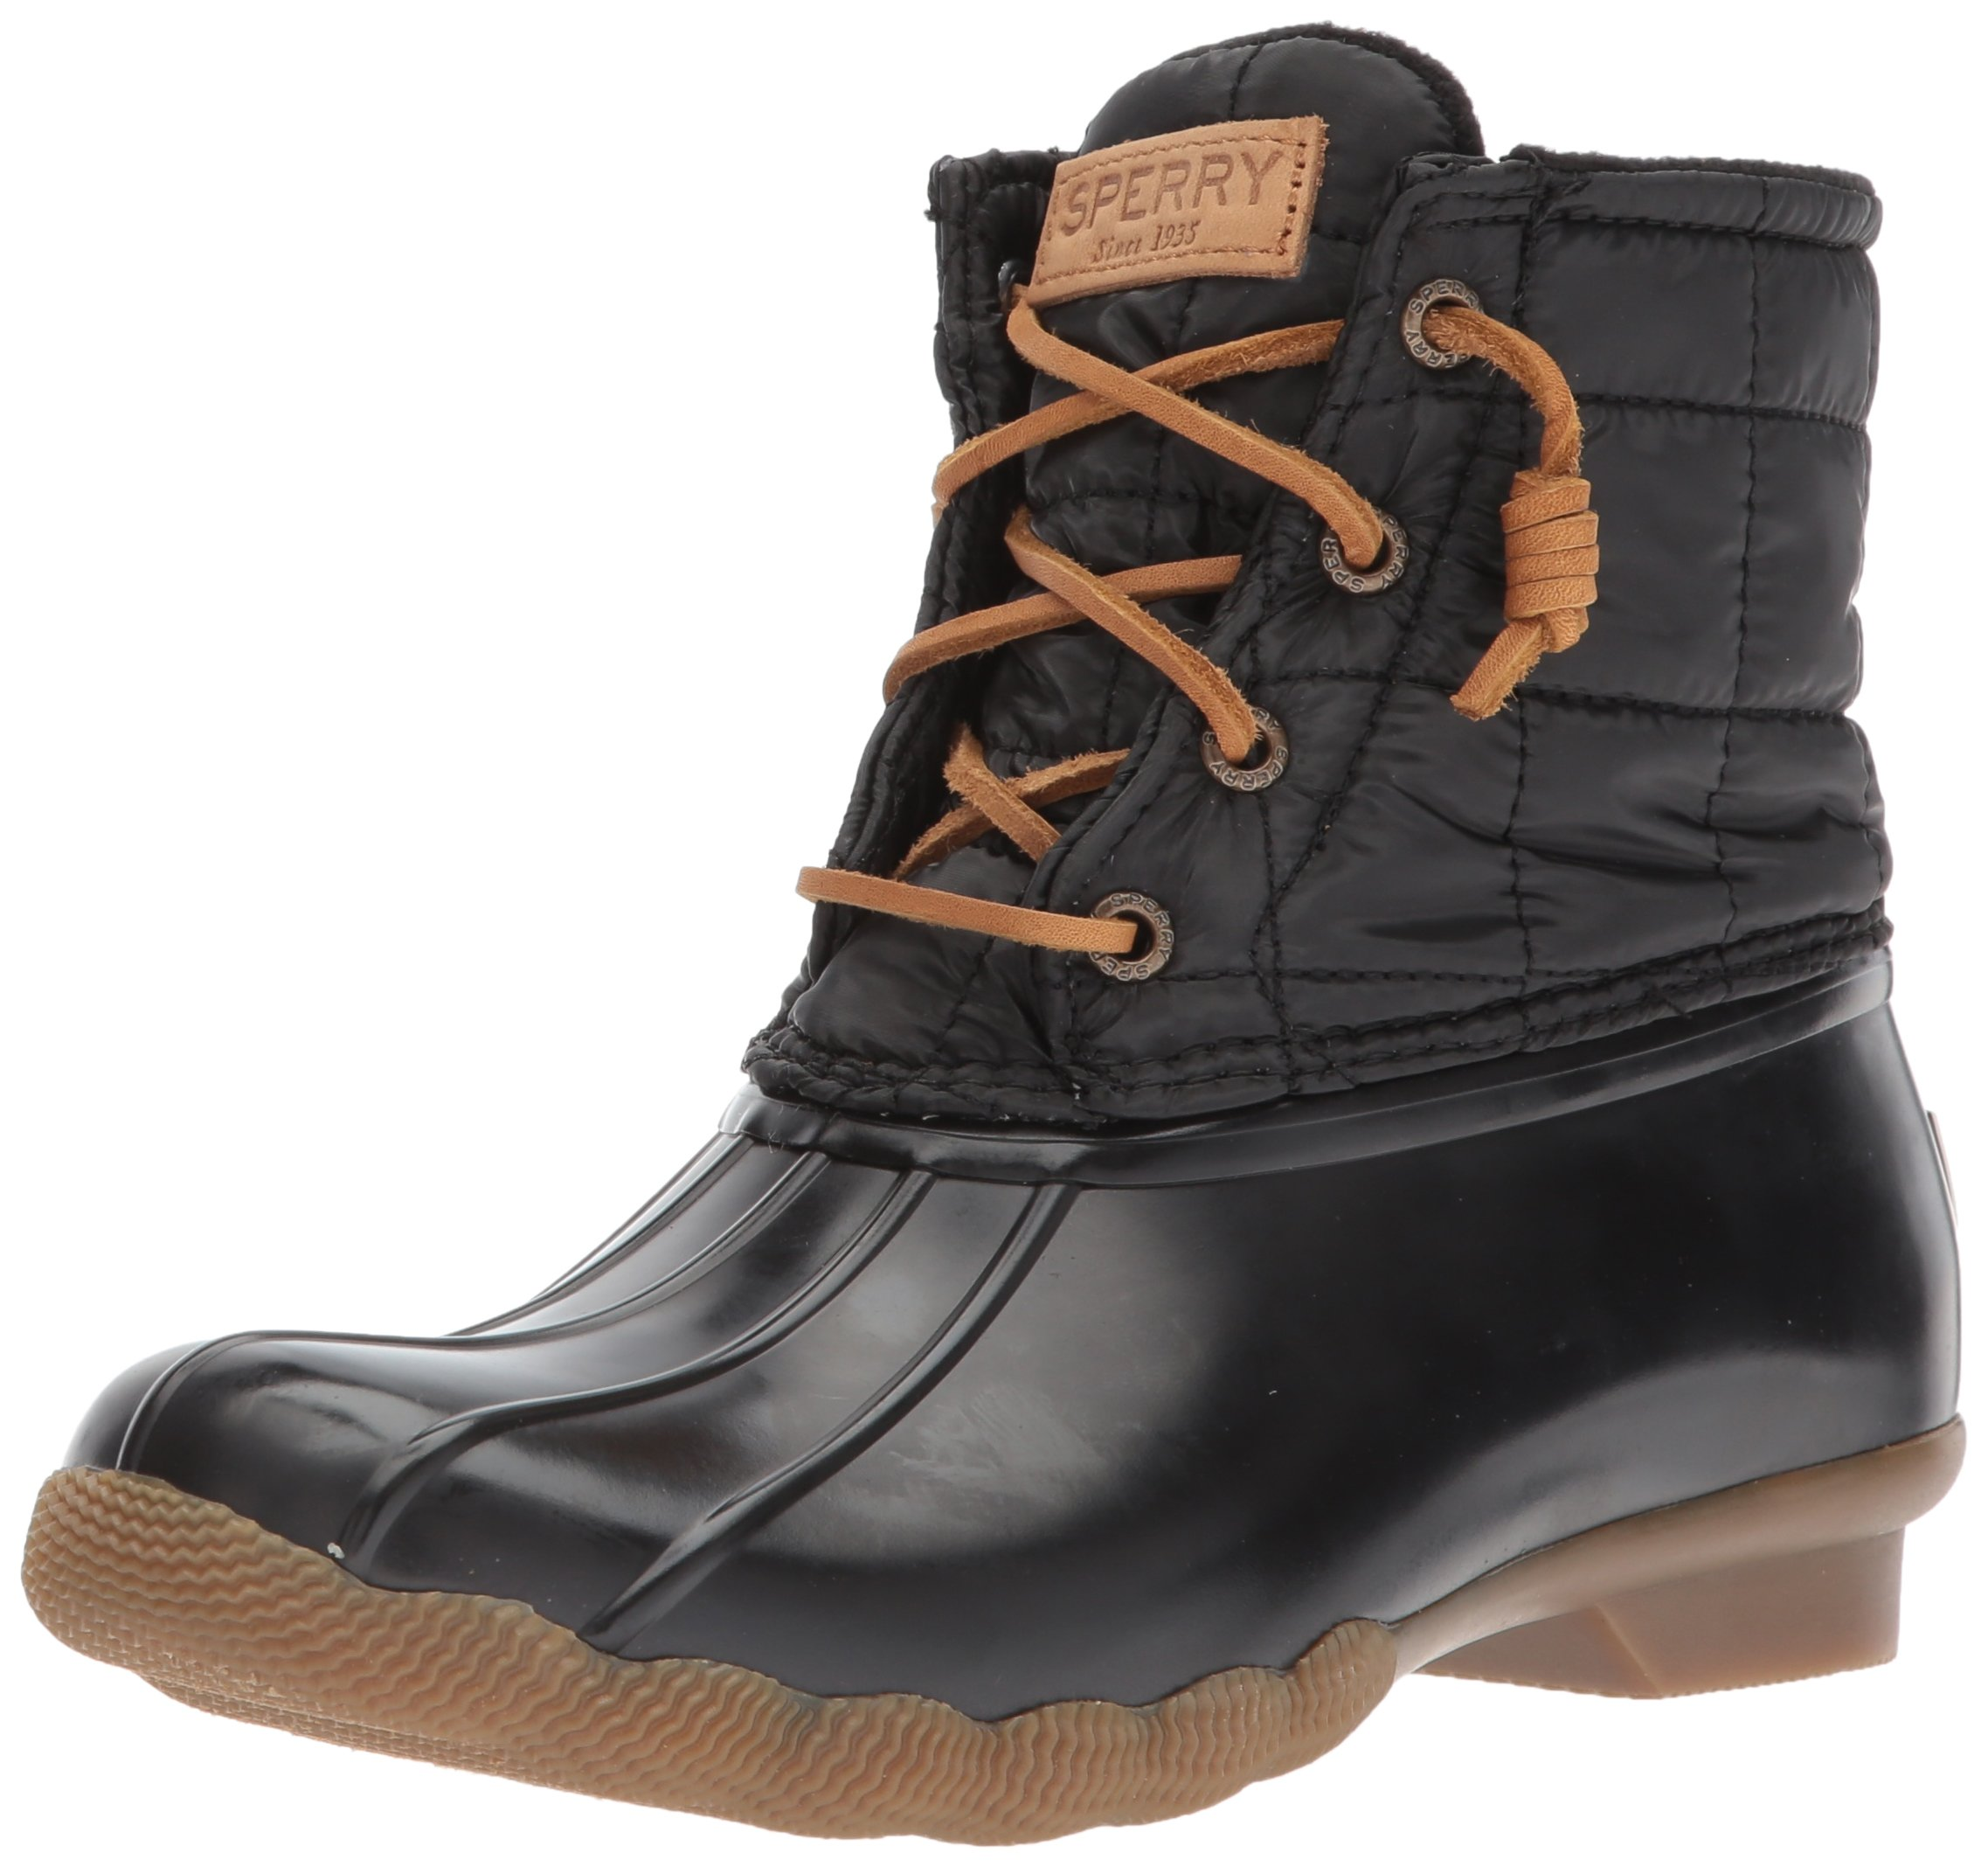 Sperry Top-Sider Women's Saltwater Shiny Quilted Rain Boot, Black, 7 Medium US